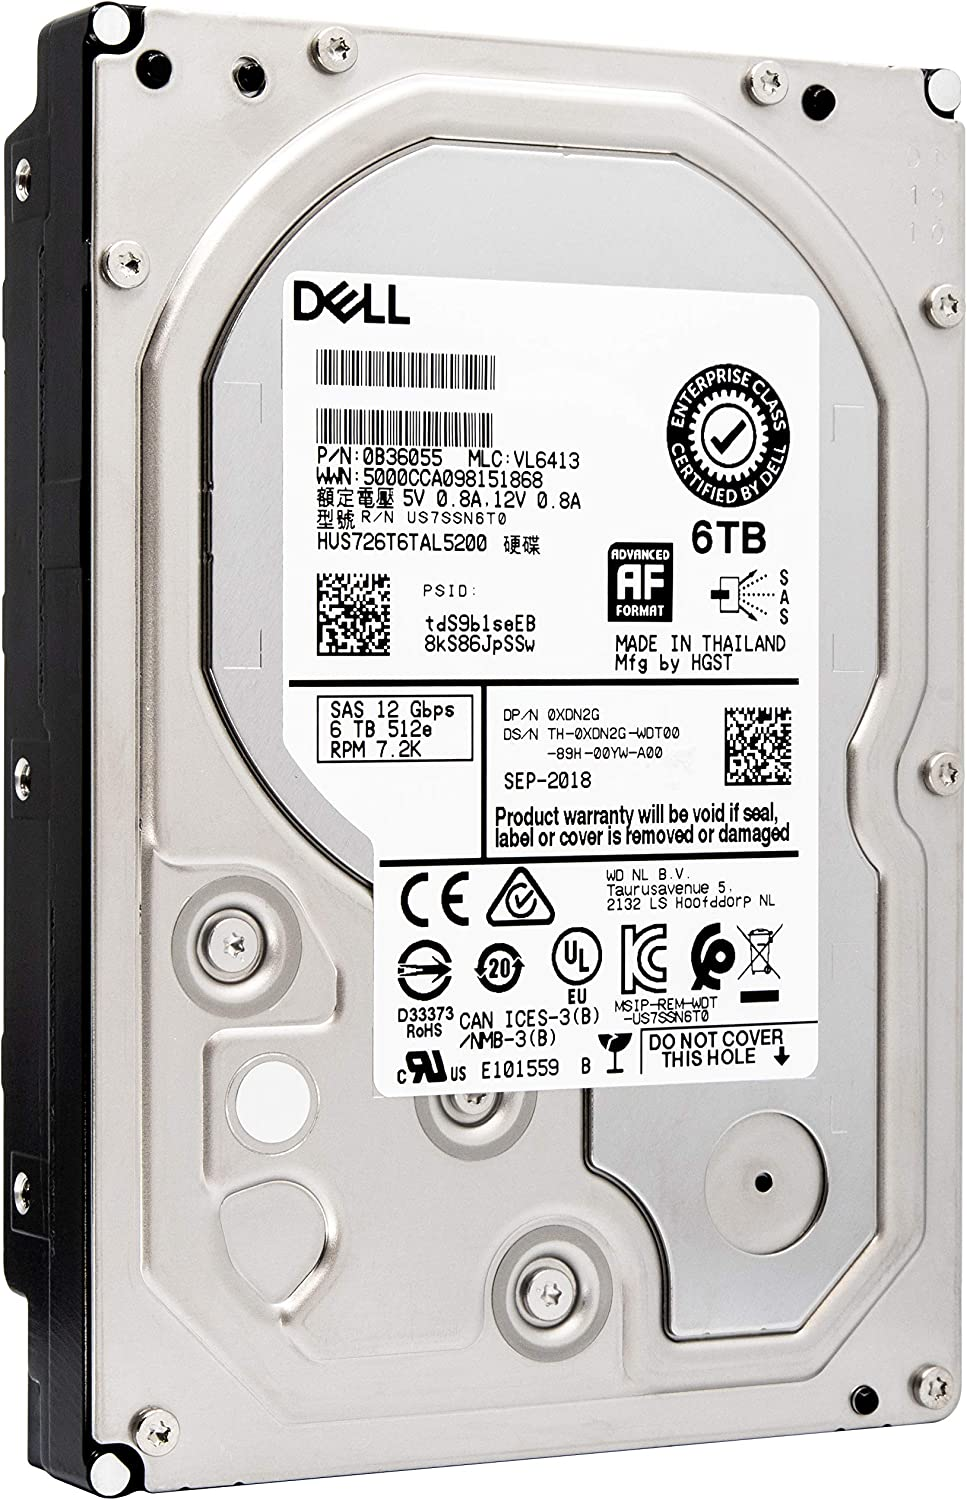 Dell XDN2G 0XDN2G 6TB SAS 12Gb/s 3.5-Inch LFF 7.2K RPM Bare HDD | Hitachi Enterprise Data Center Hard Drive | HUS726T6TAL5200 | No Tray | Bundle with Compatily Carrier-Install Screwdriver Kit